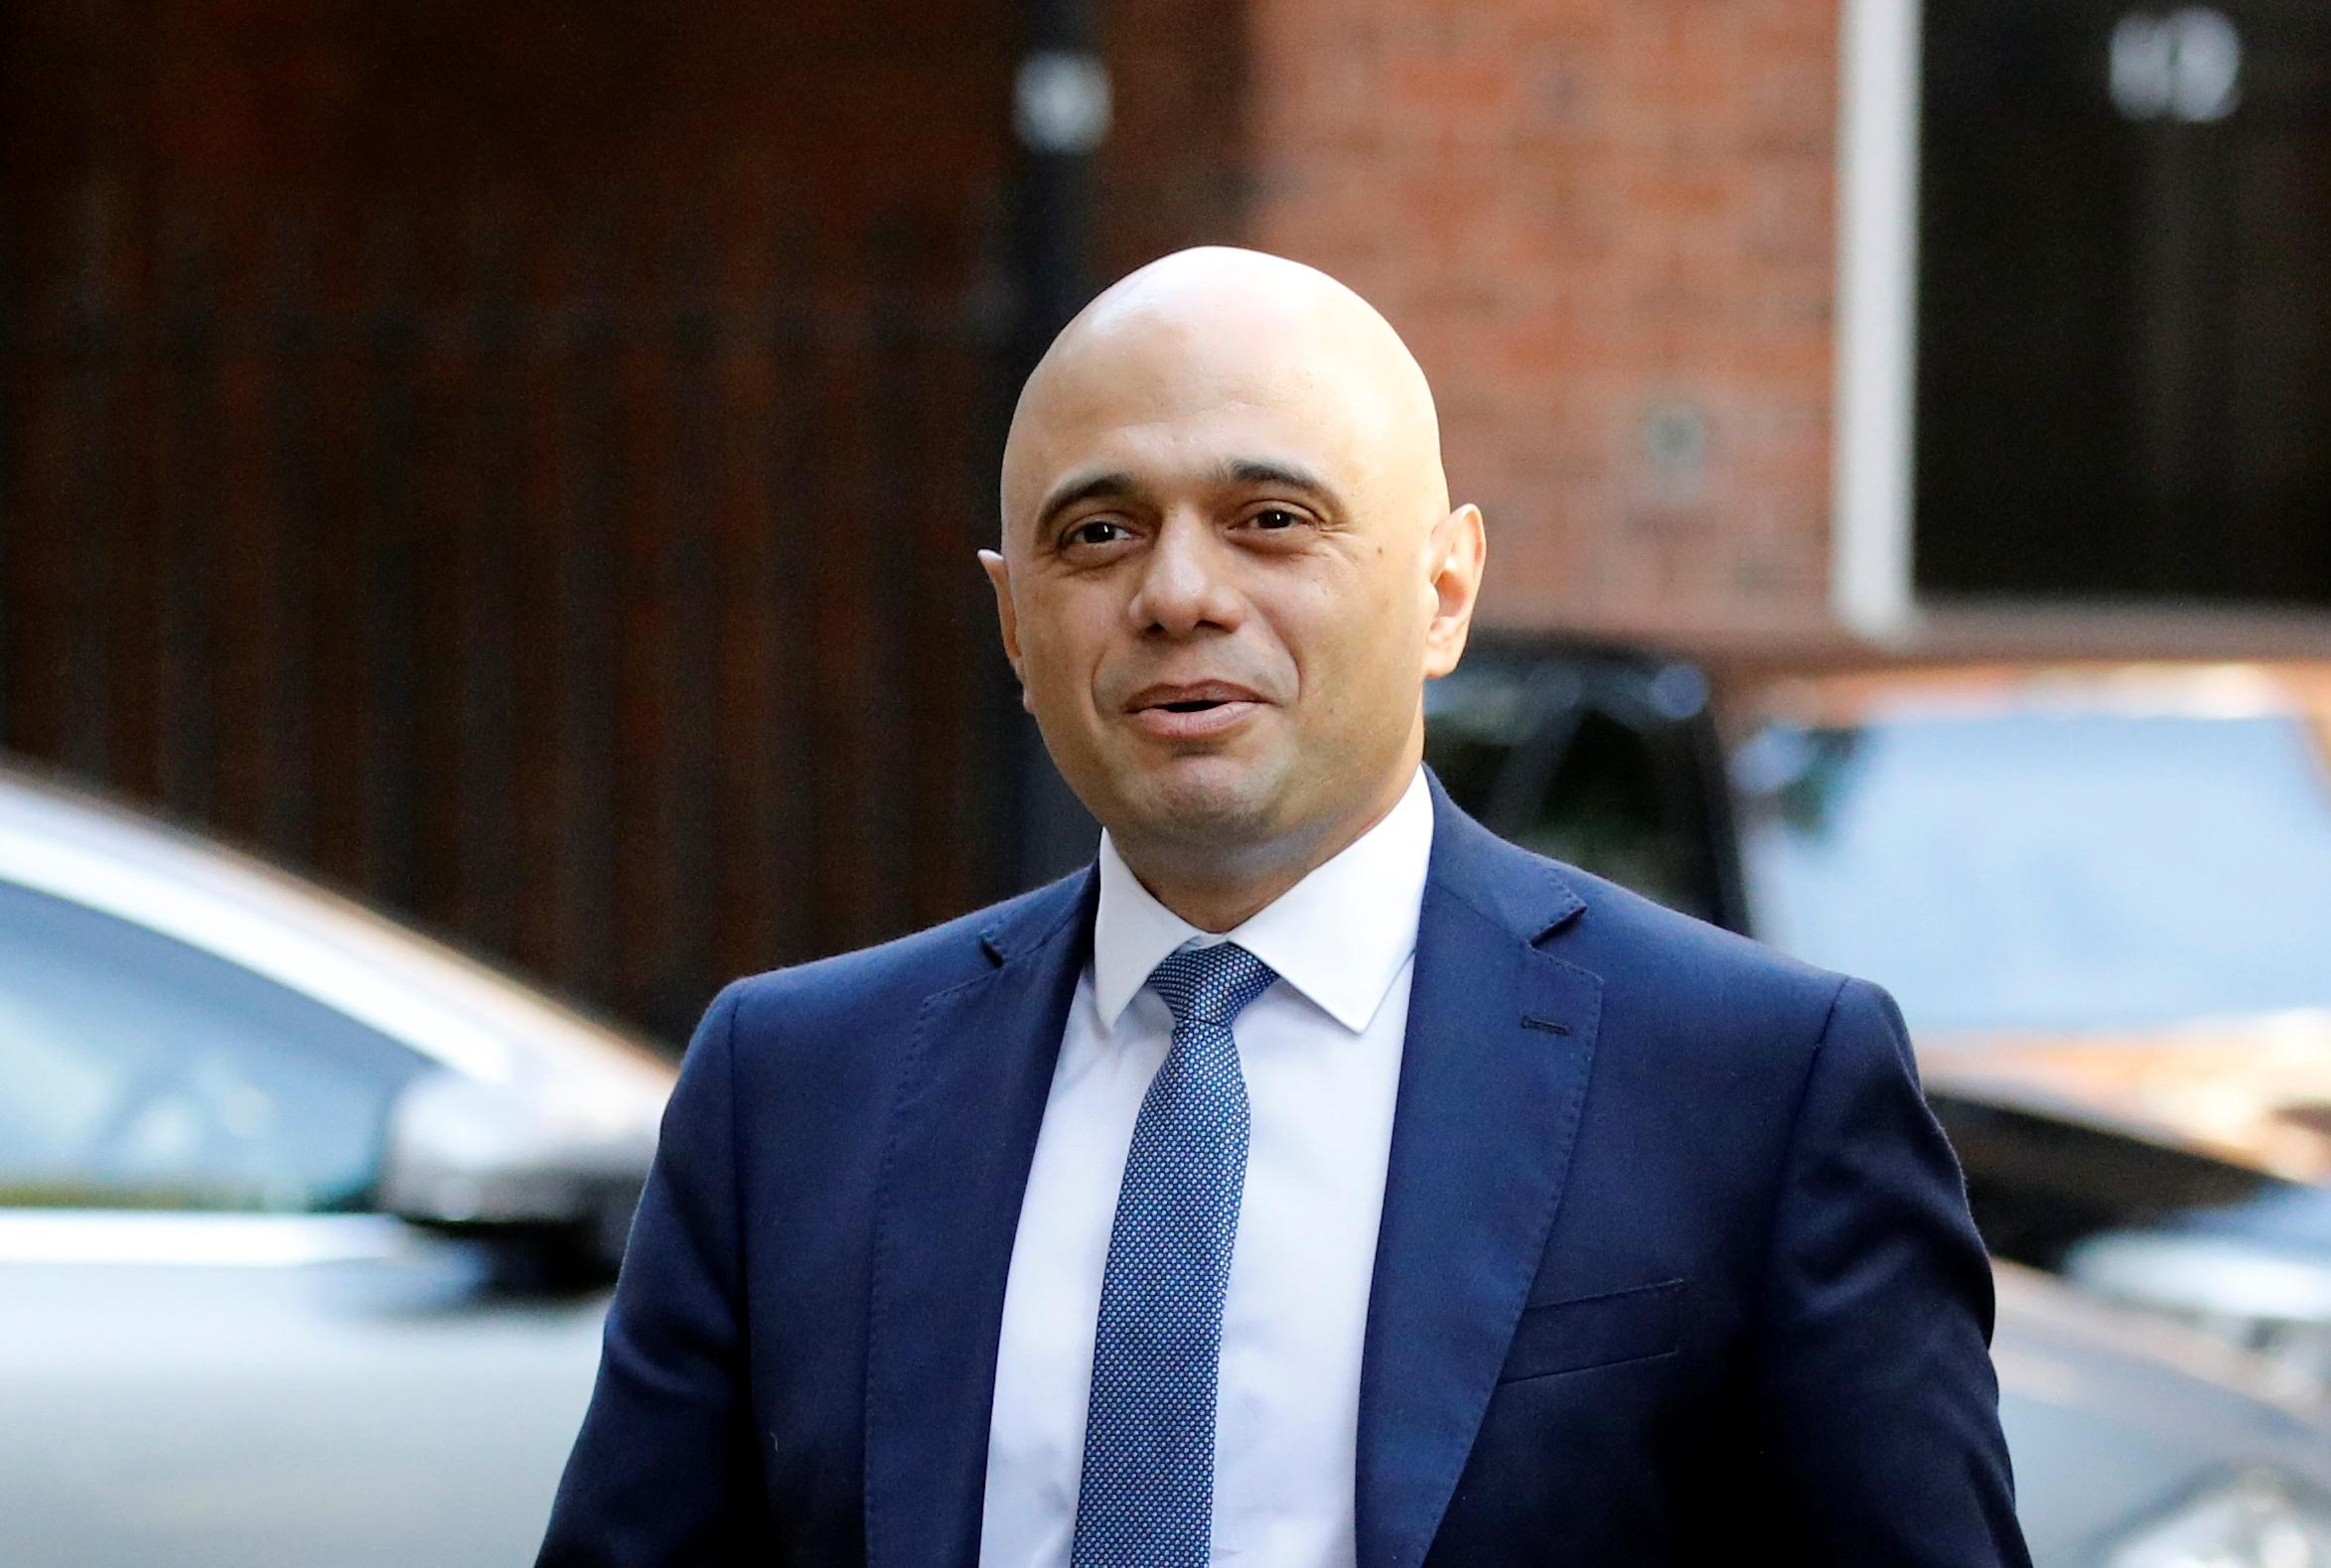 UK's Sajid Javid plans October giveaway Budget - FT